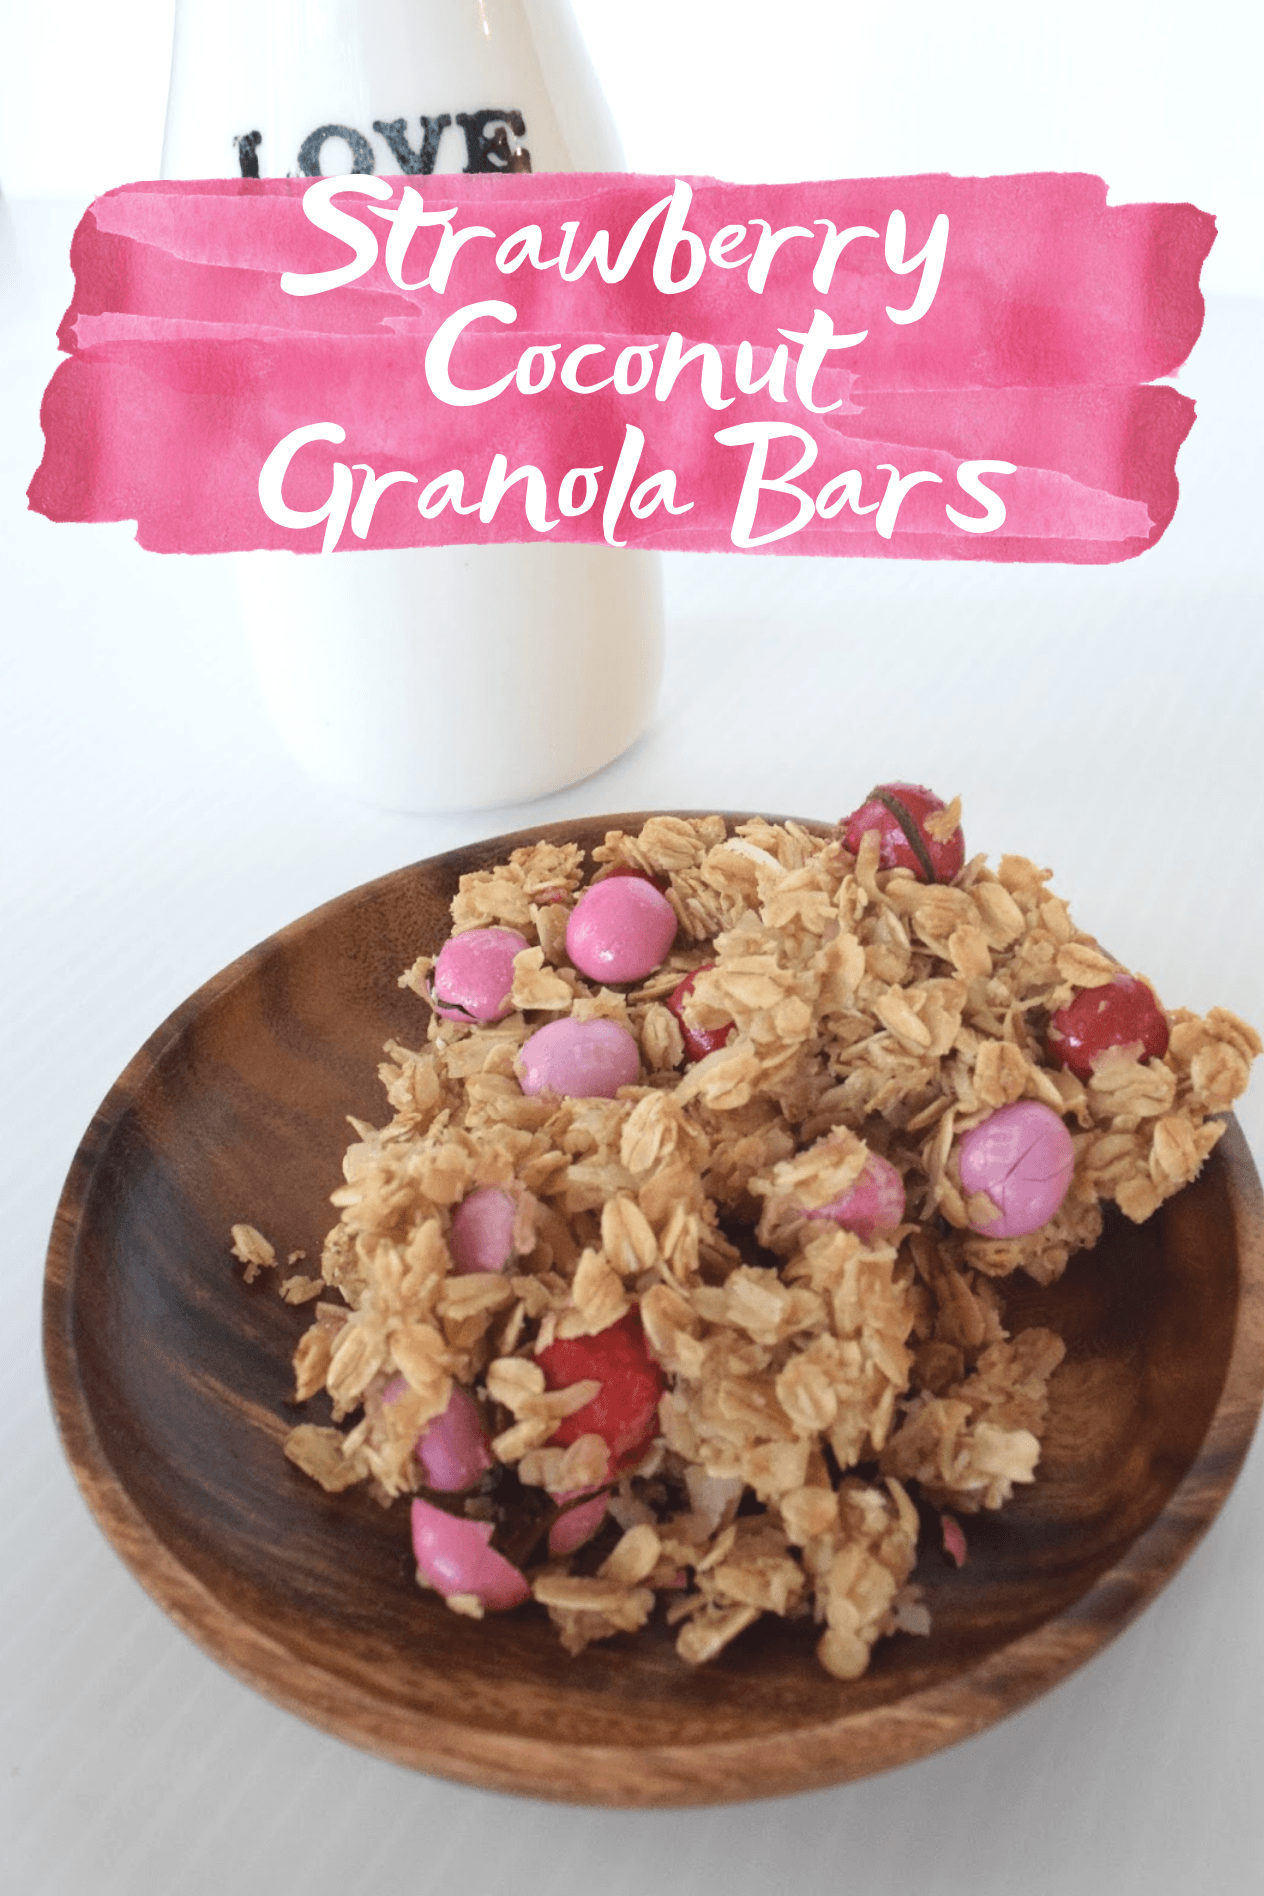 Strawberry Coconut Granola Bars - An easy Valentine's Day treat using ingredients you already have at home! | Valentine's Day Dessert - Strawberry M&Ms - Homemade Granola Bar Recipe